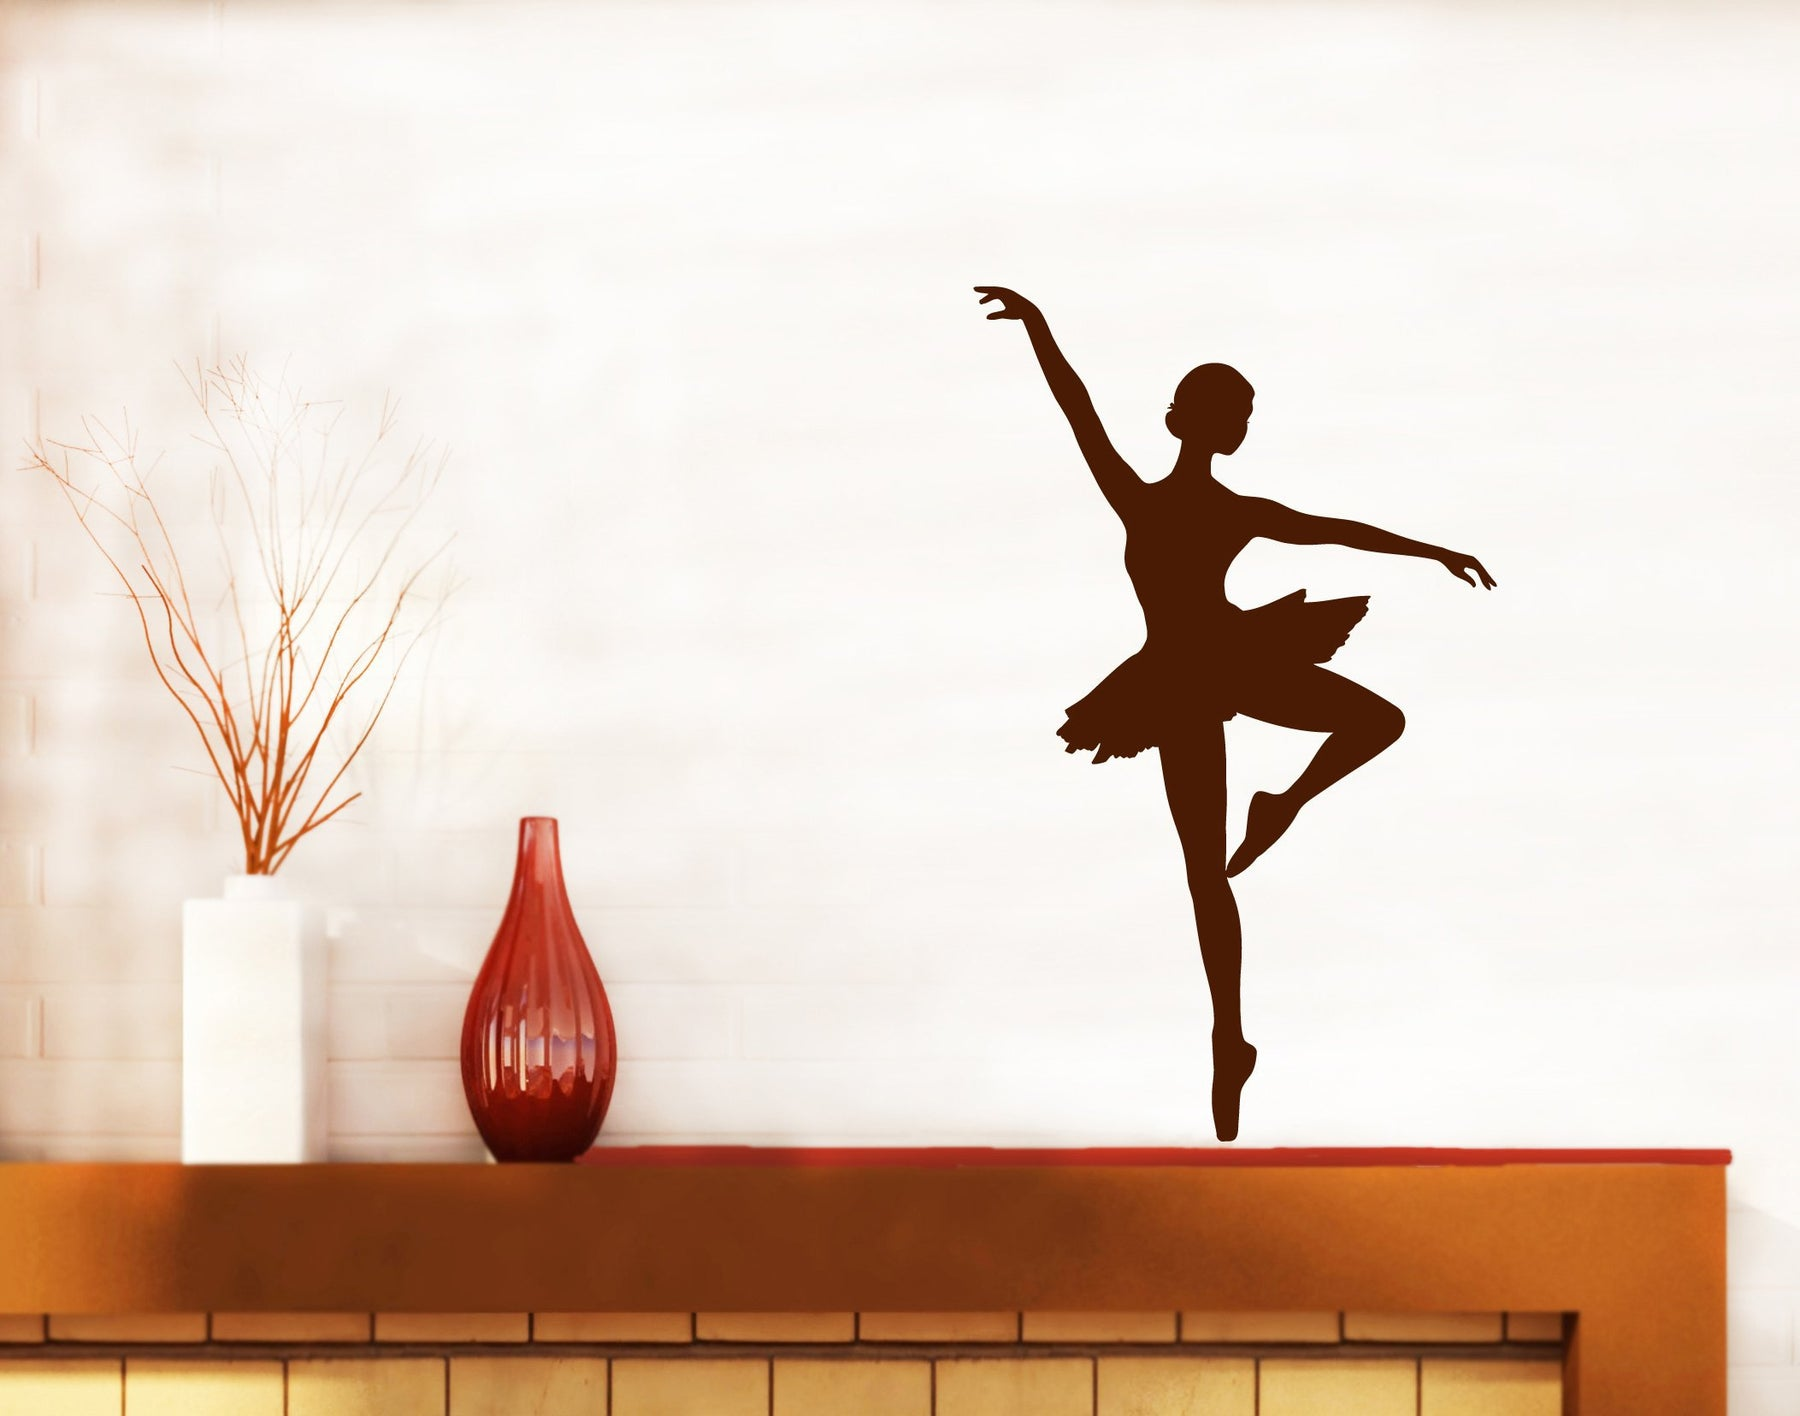 Large Vinyl Decal Wall Sticker Artist Theater Ballerina Classical Dance Studio Decor (n603)